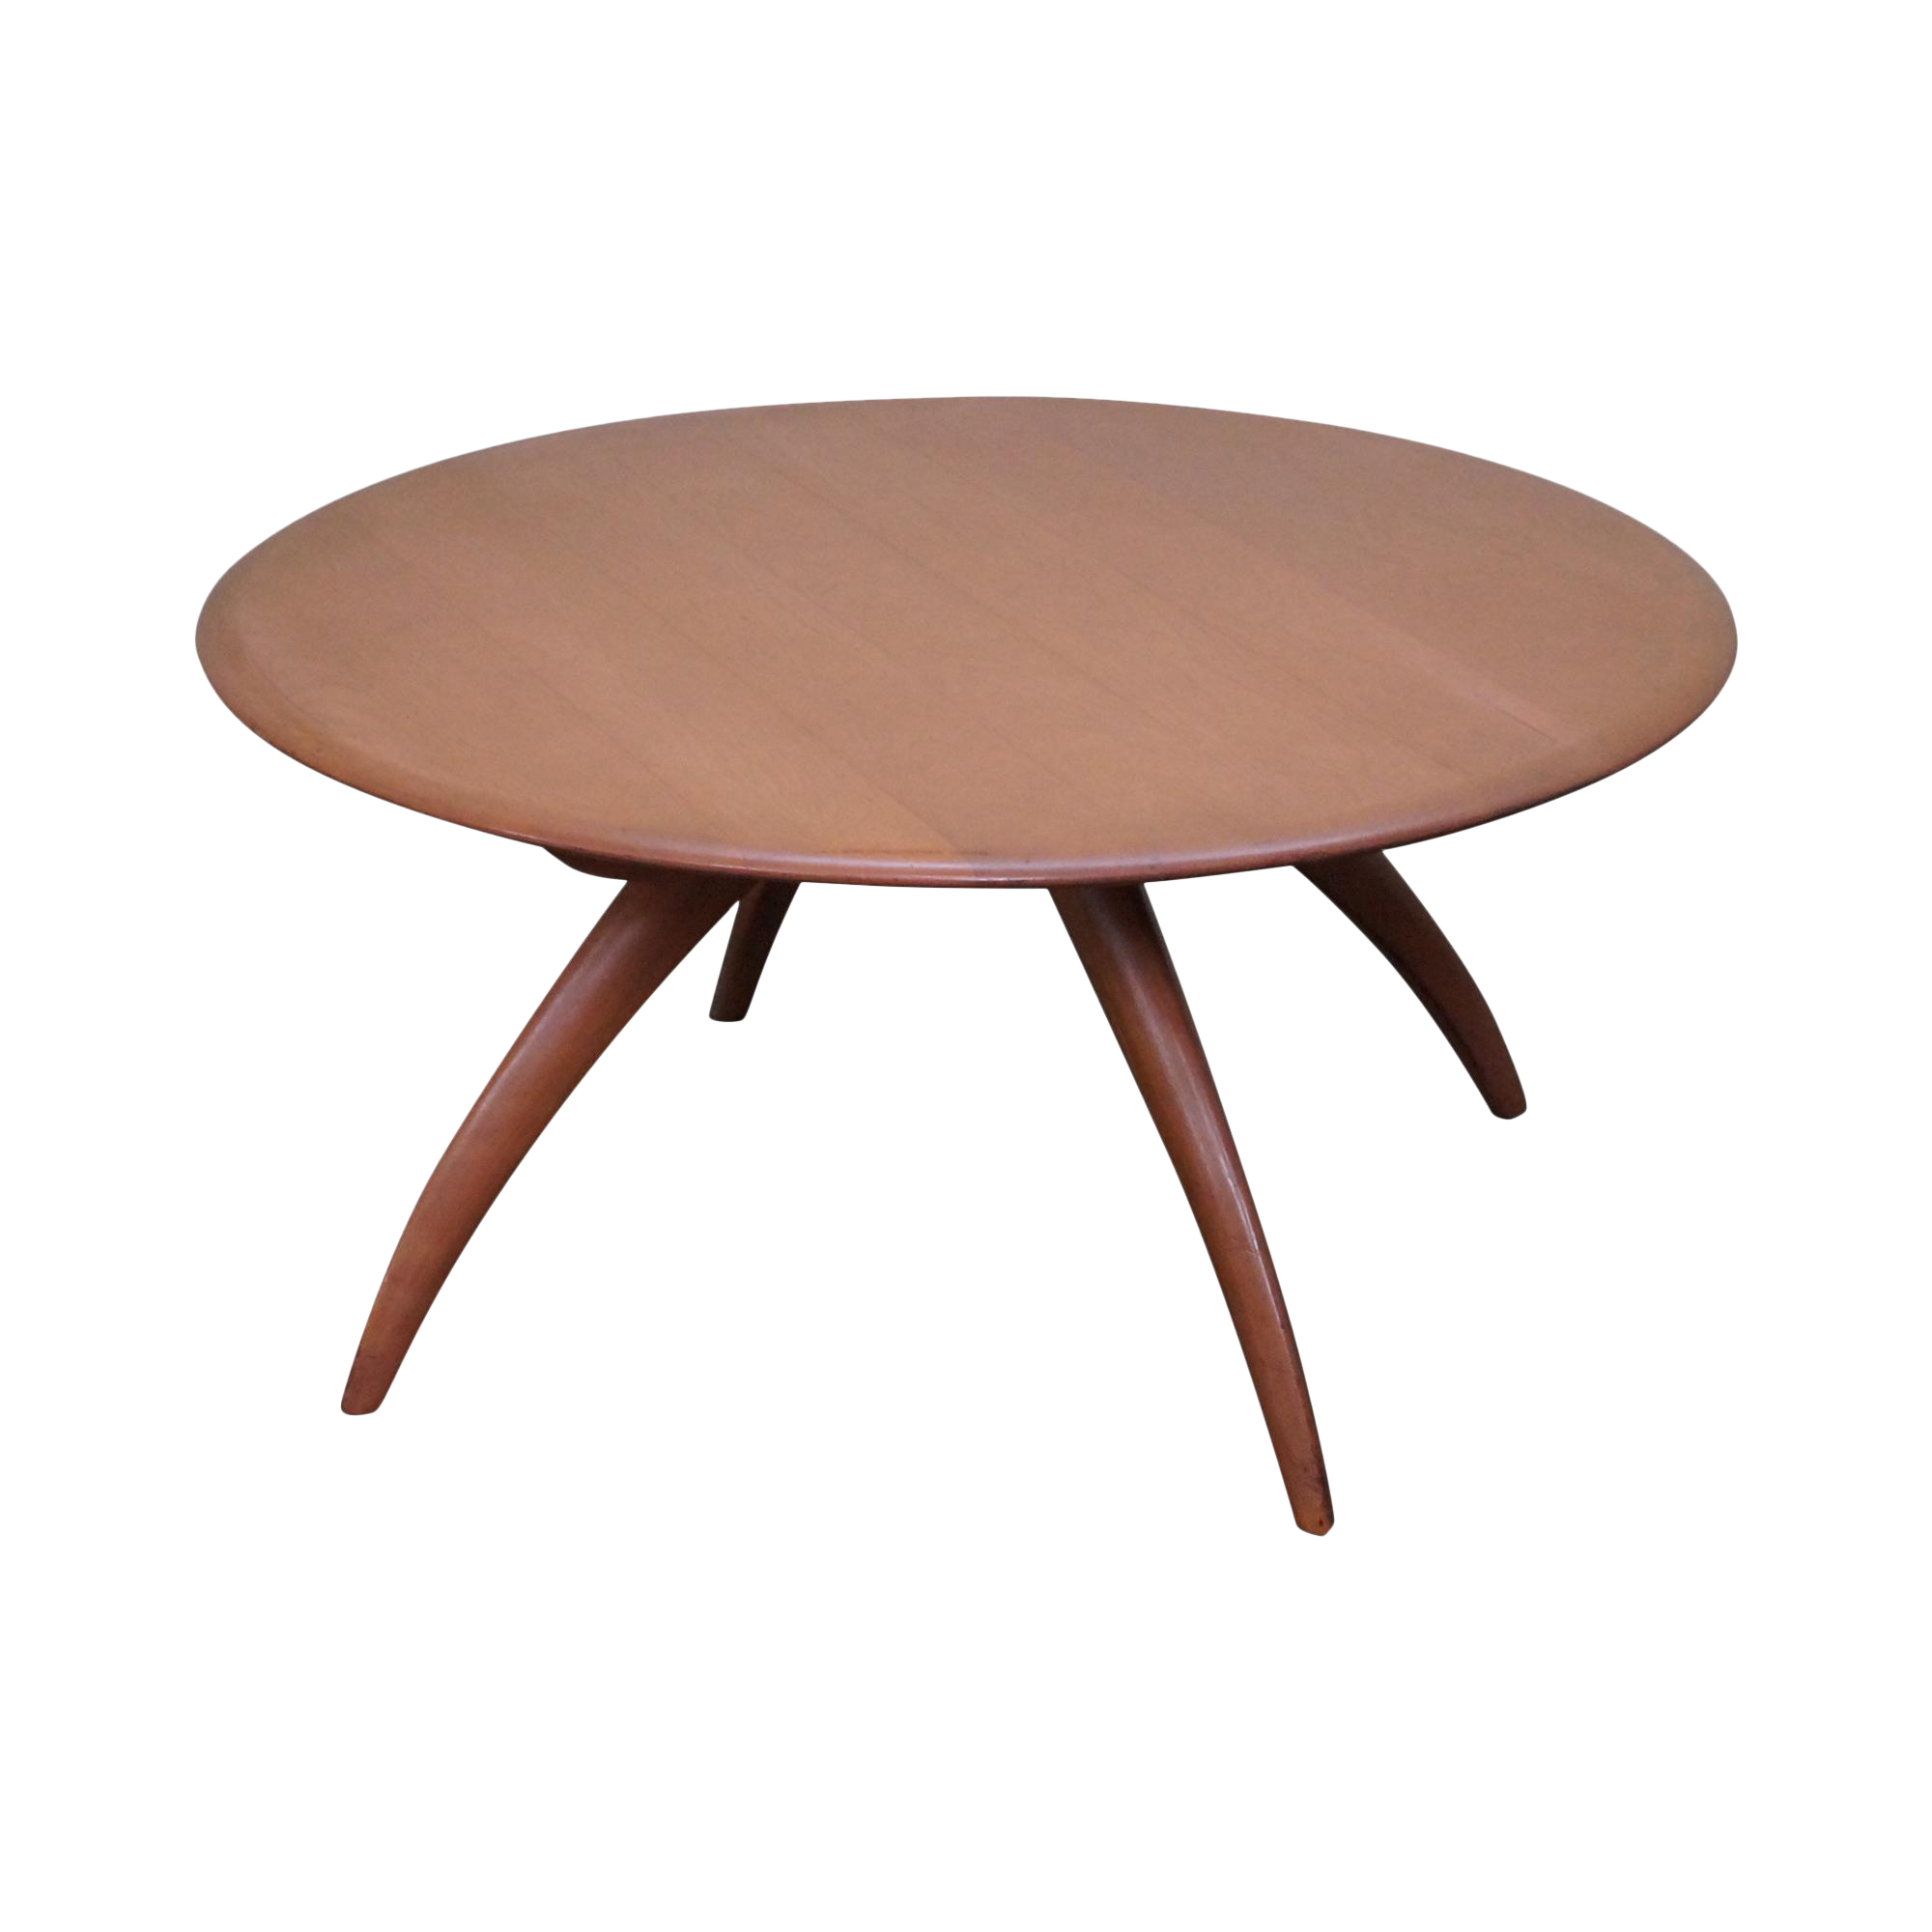 Heywood Wakefield Revolving Maple Coffee Table Chairish